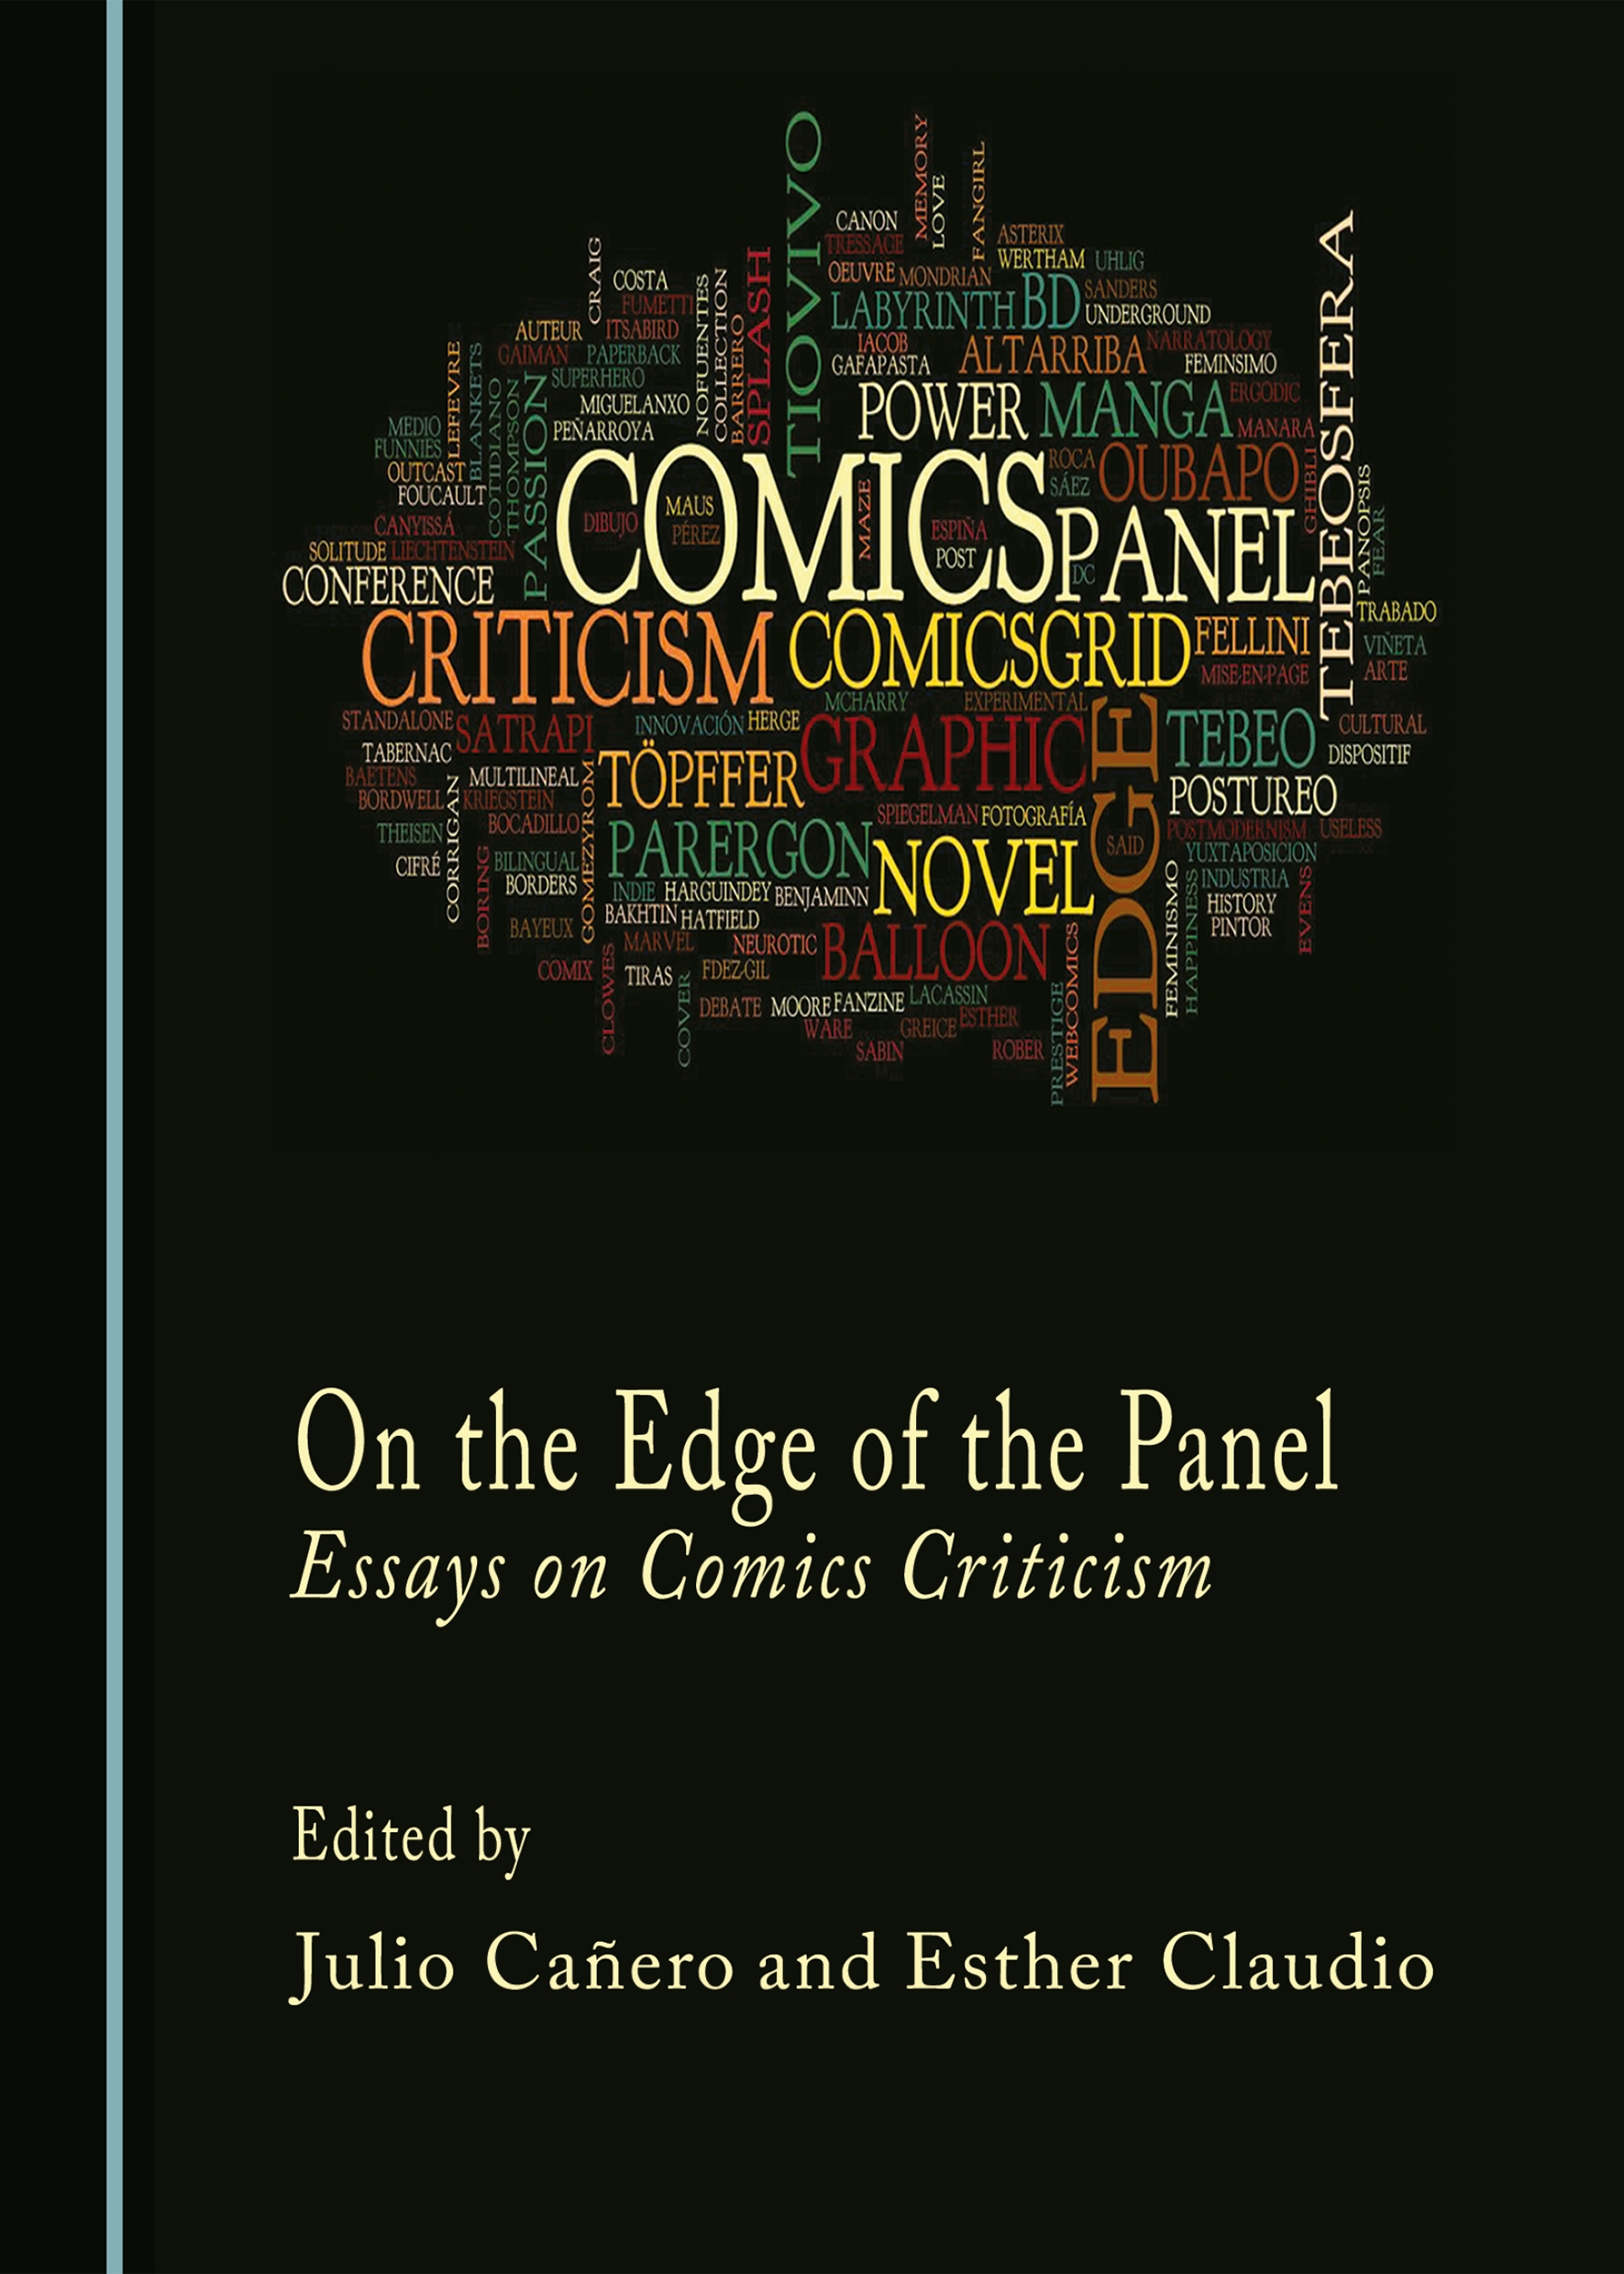 On the Edge of the Panel: Essays on Comics Criticism